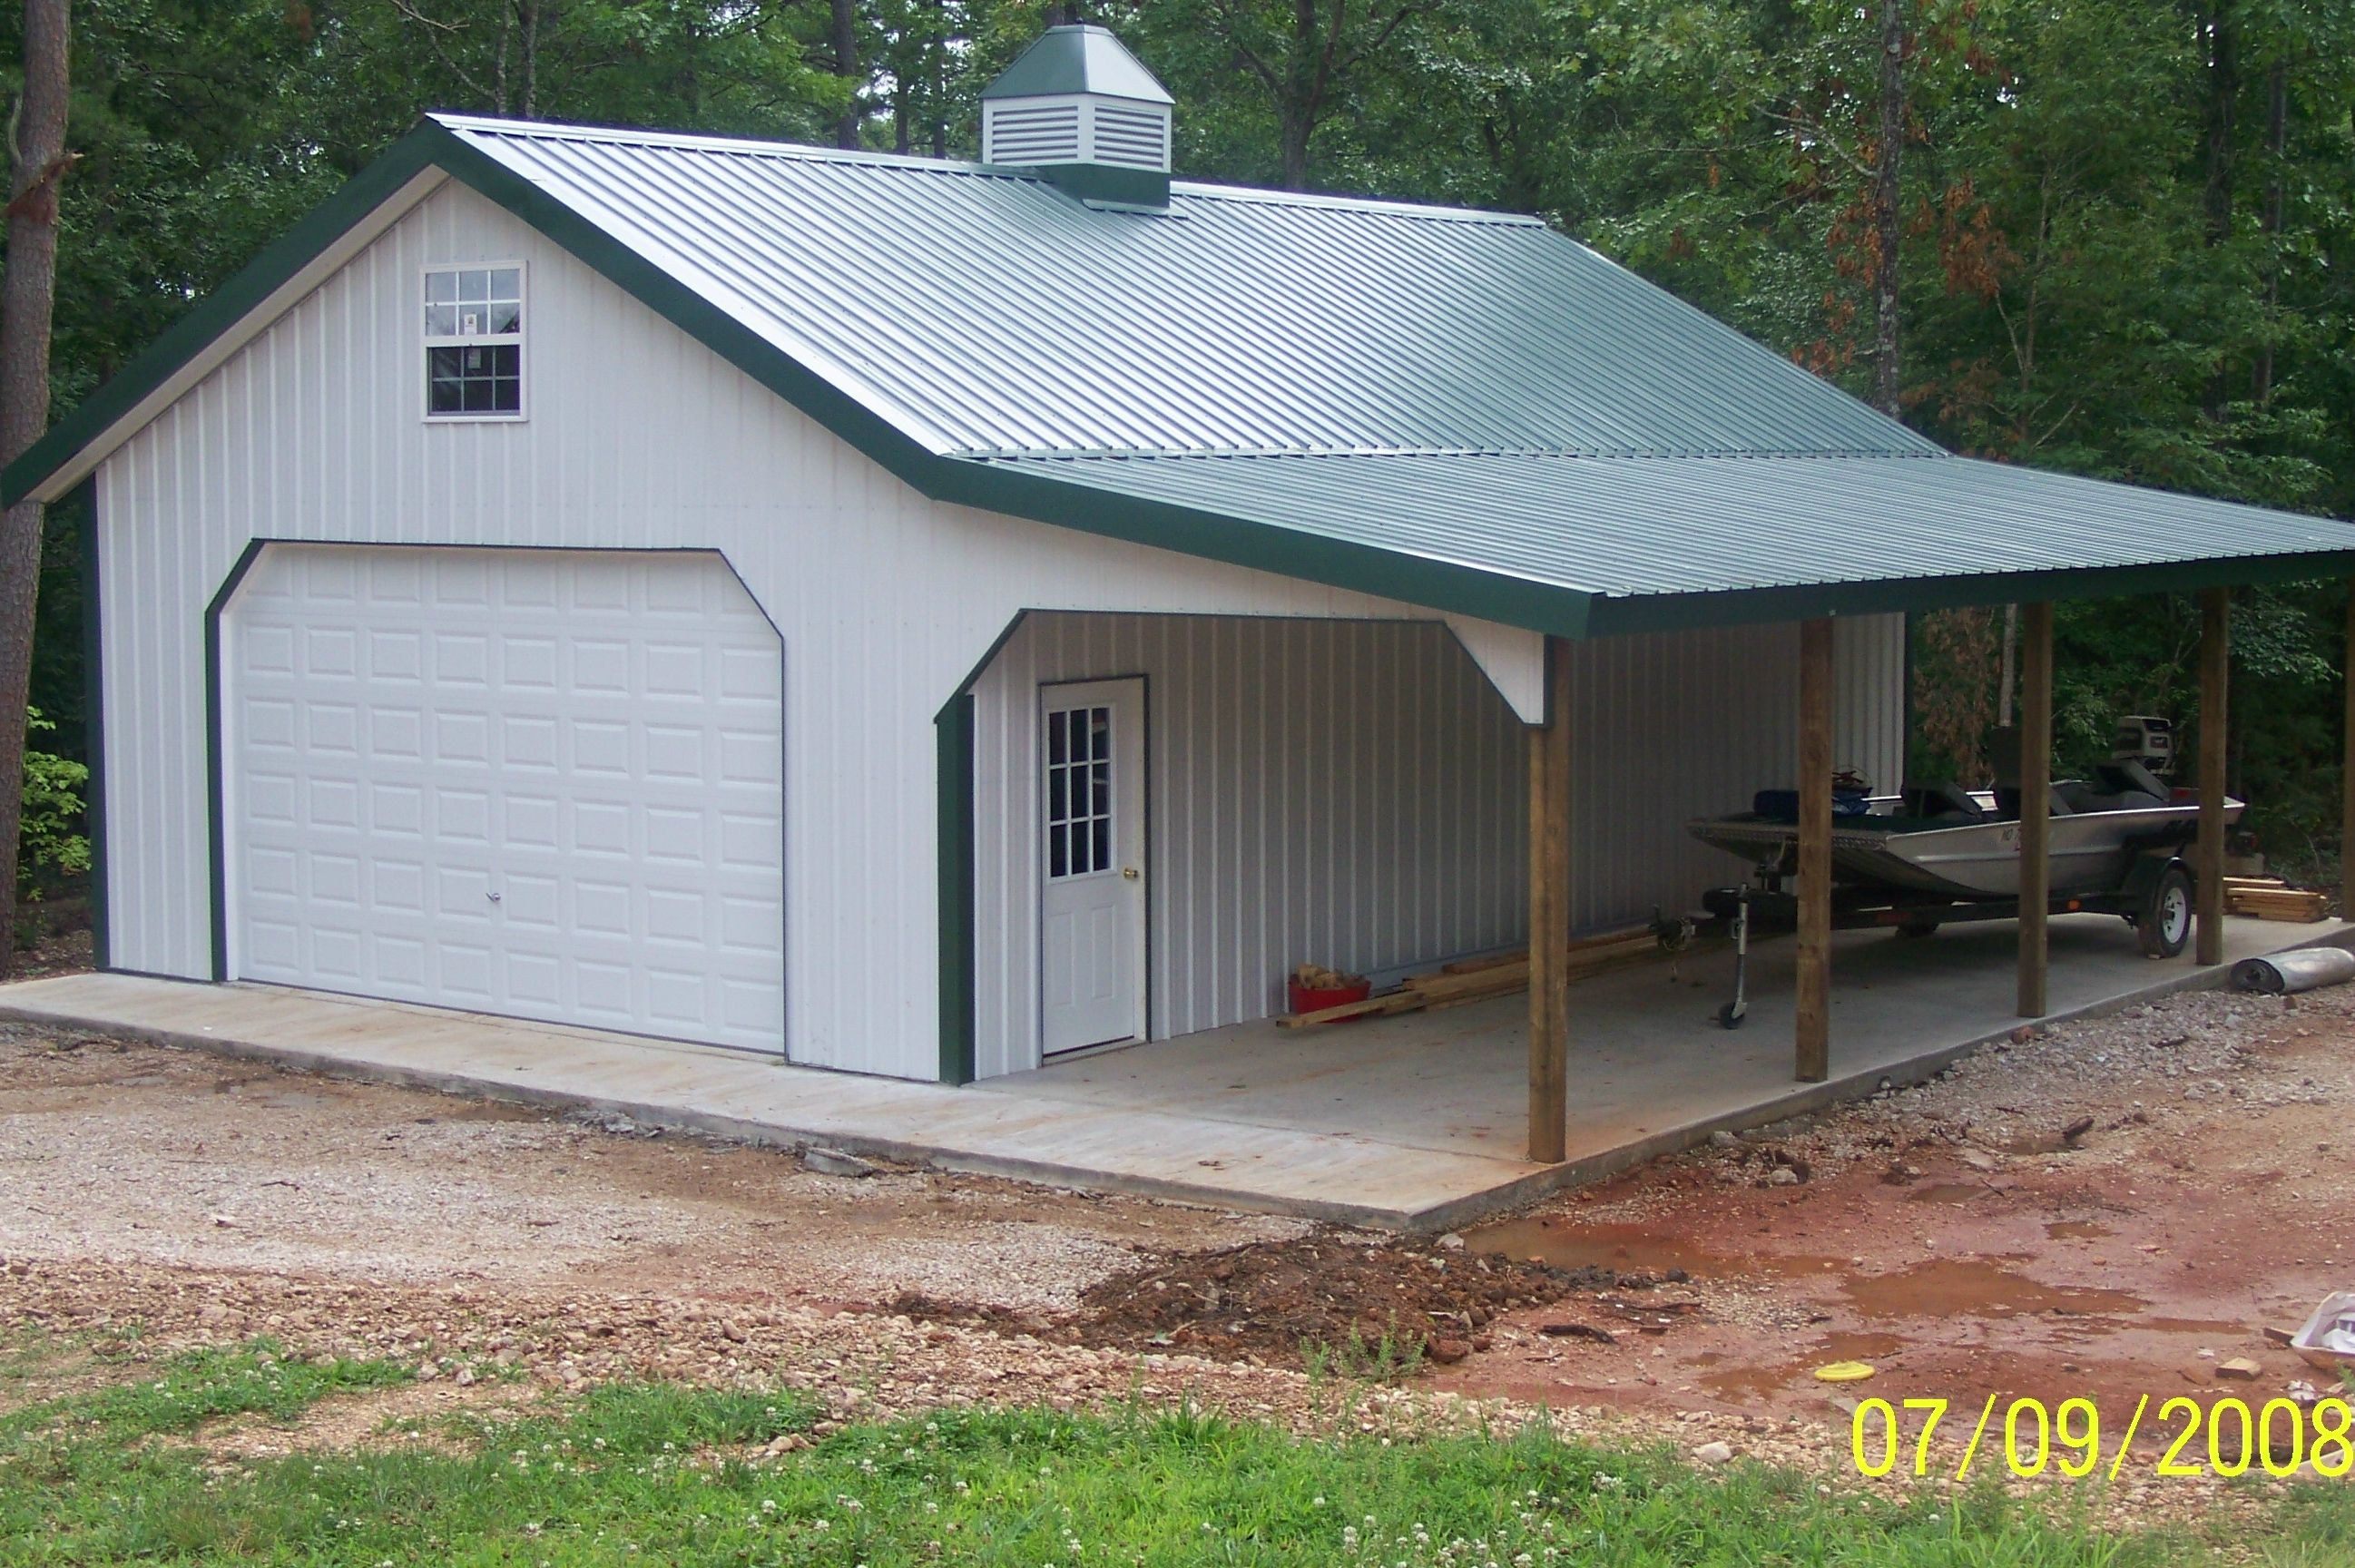 Garage plans 58 garage plans and free diy building for Small garage plans free